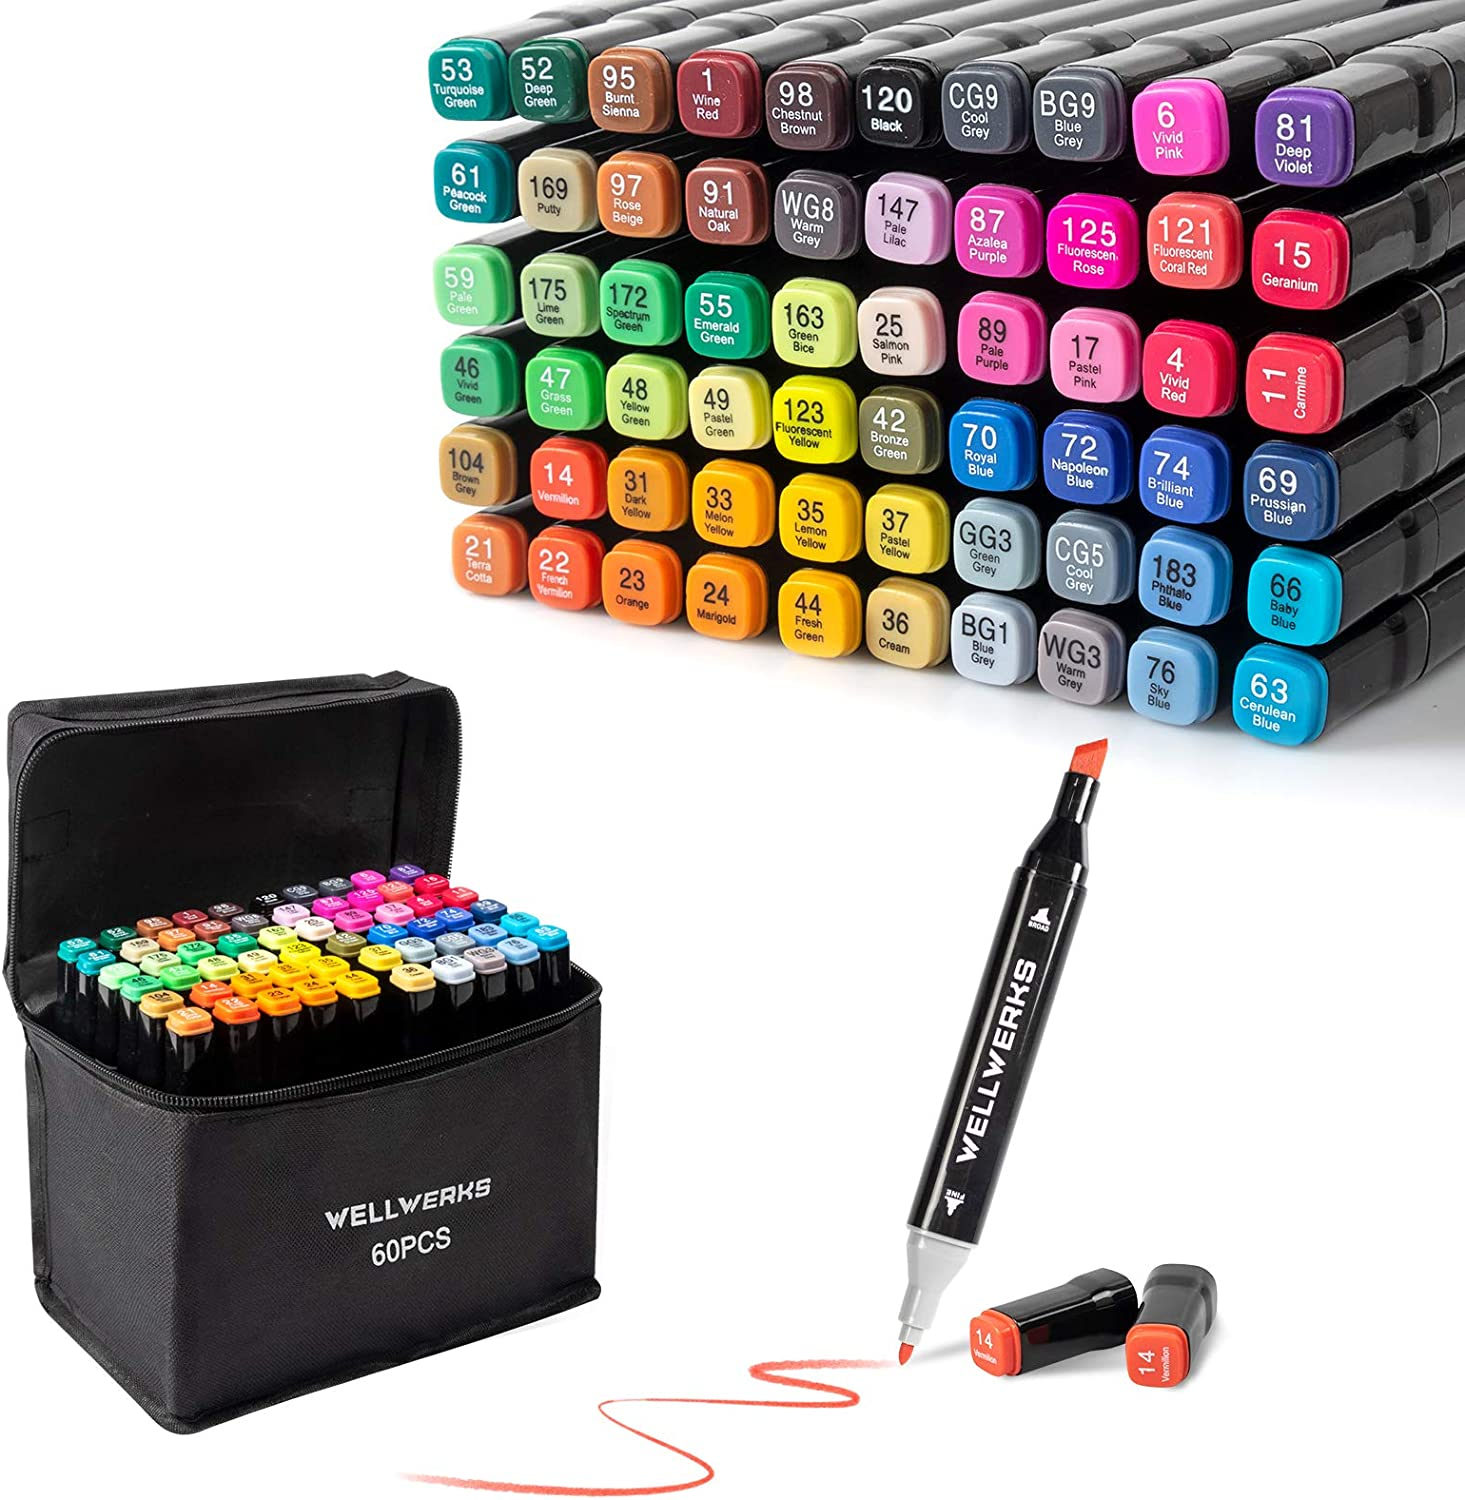 60 OFFicial mail order Colors Alcohol Markers Wellwerks Max 81% OFF D Brush Double-Tip Chisel